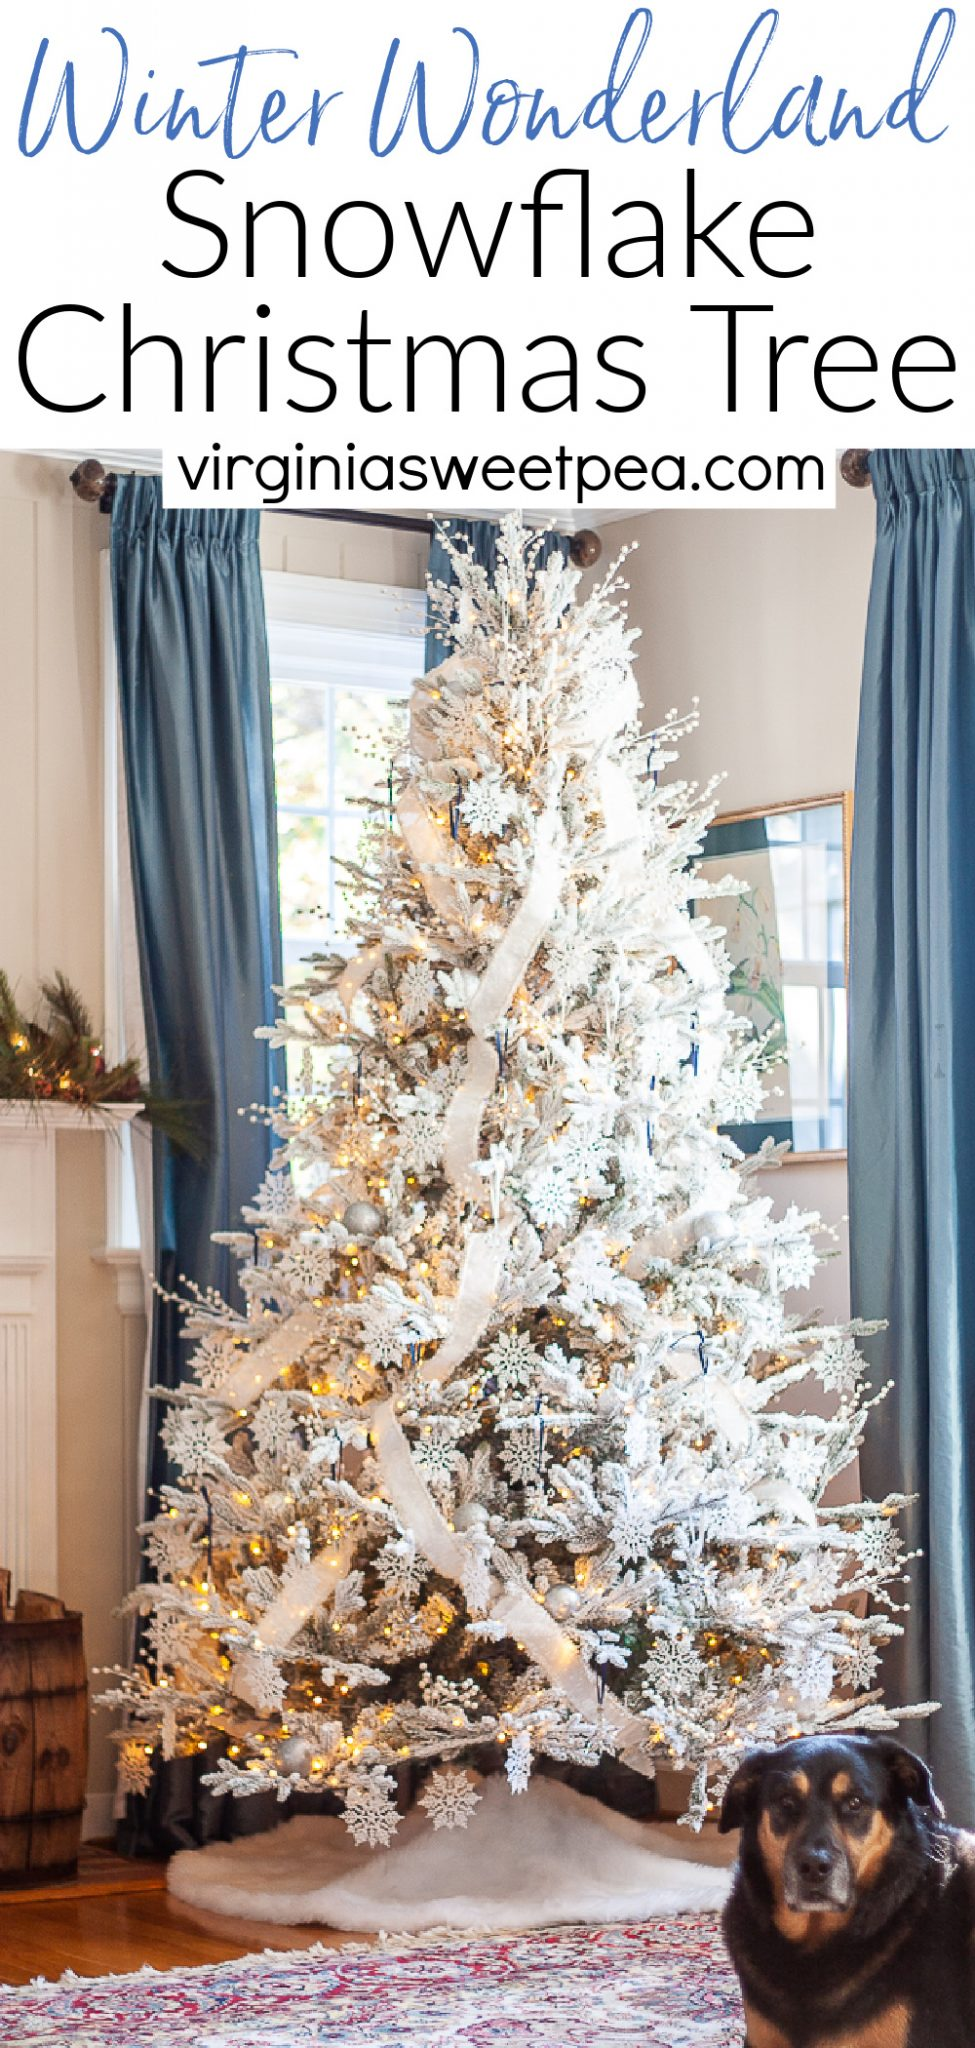 Winter Wonderland Snowflake Christmas Tree - See a flocked Christmas tree decorated with a snowflake theme featuring Swarovski crystal snowflake ornaments.  Get 25+ more Christmas tree decorating ideas from a talented group of home decor bloggers who also are sharing their Christmas trees. You'll be inspired by all of the ideas!  via @spaula